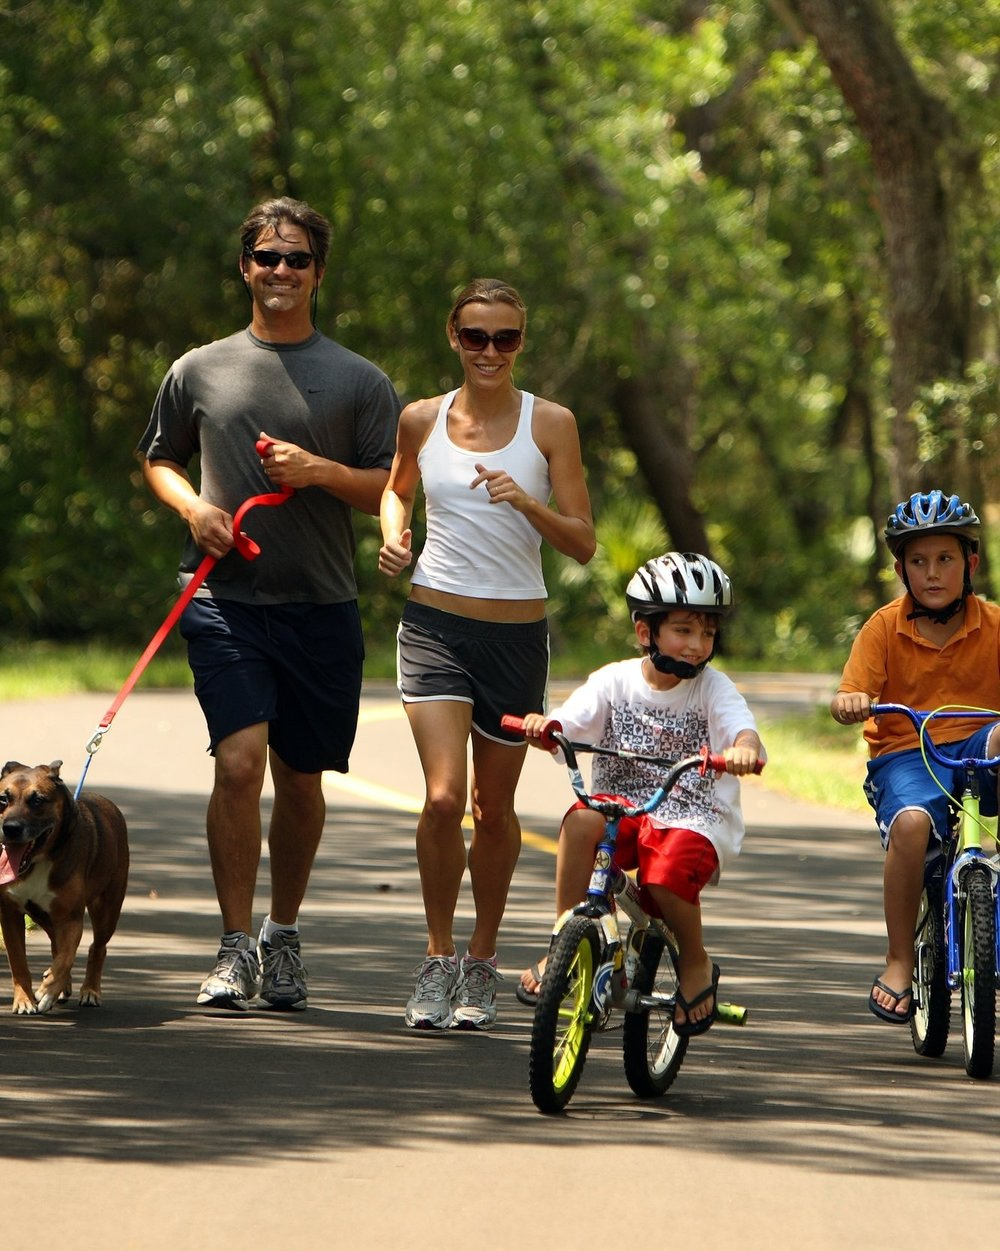 family+biking+jogging+trail.jpg